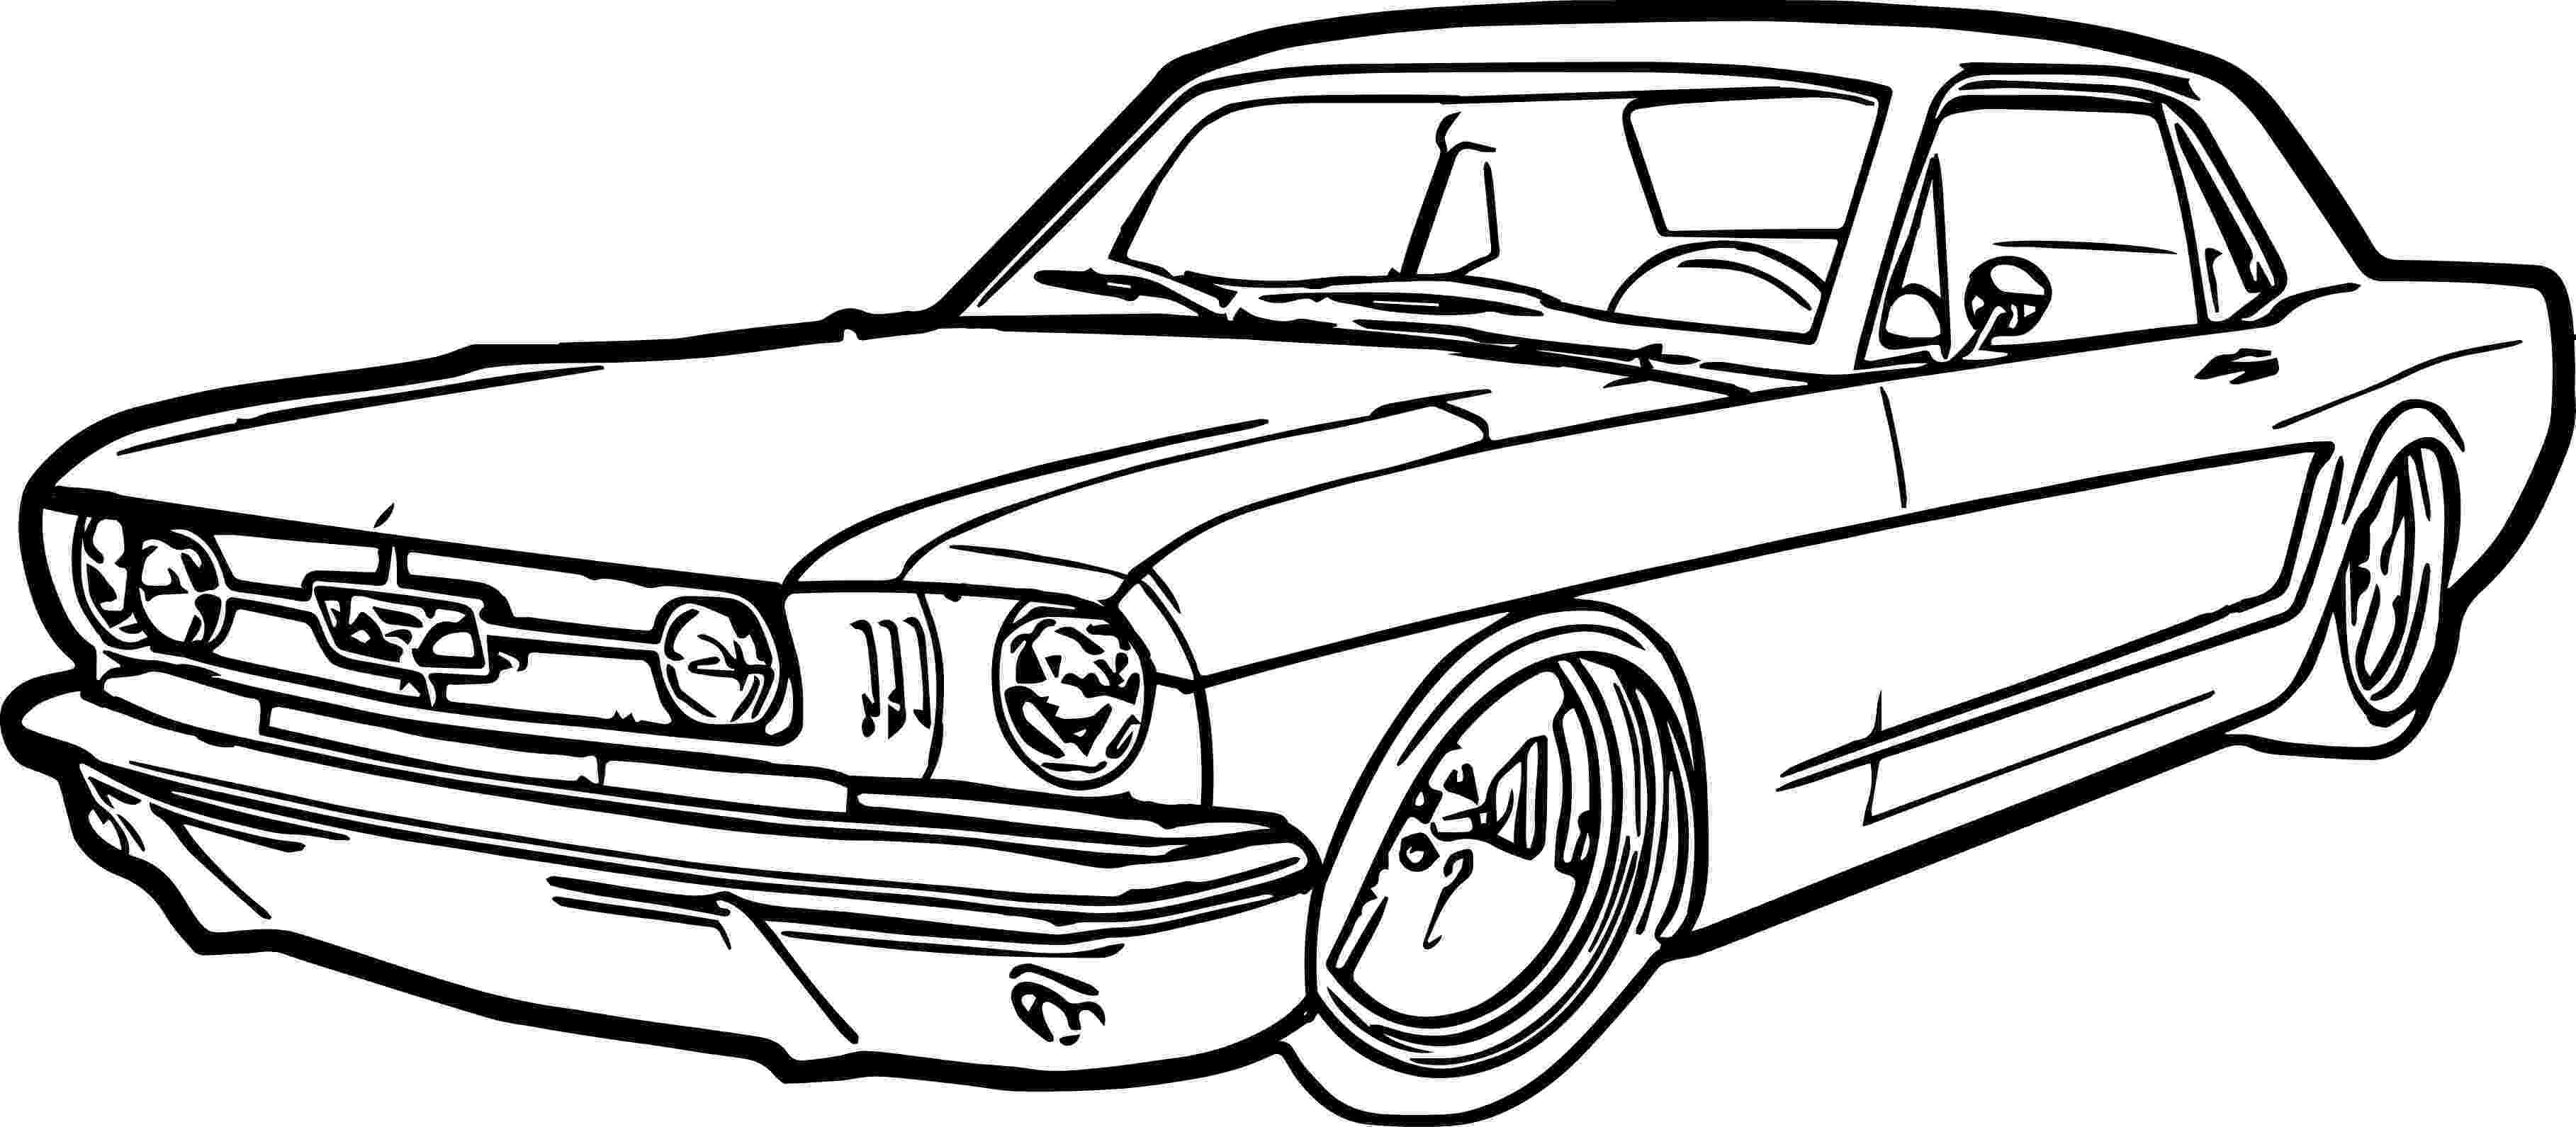 cars printable muscle car coloring pages to download and print for free cars printable 1 1